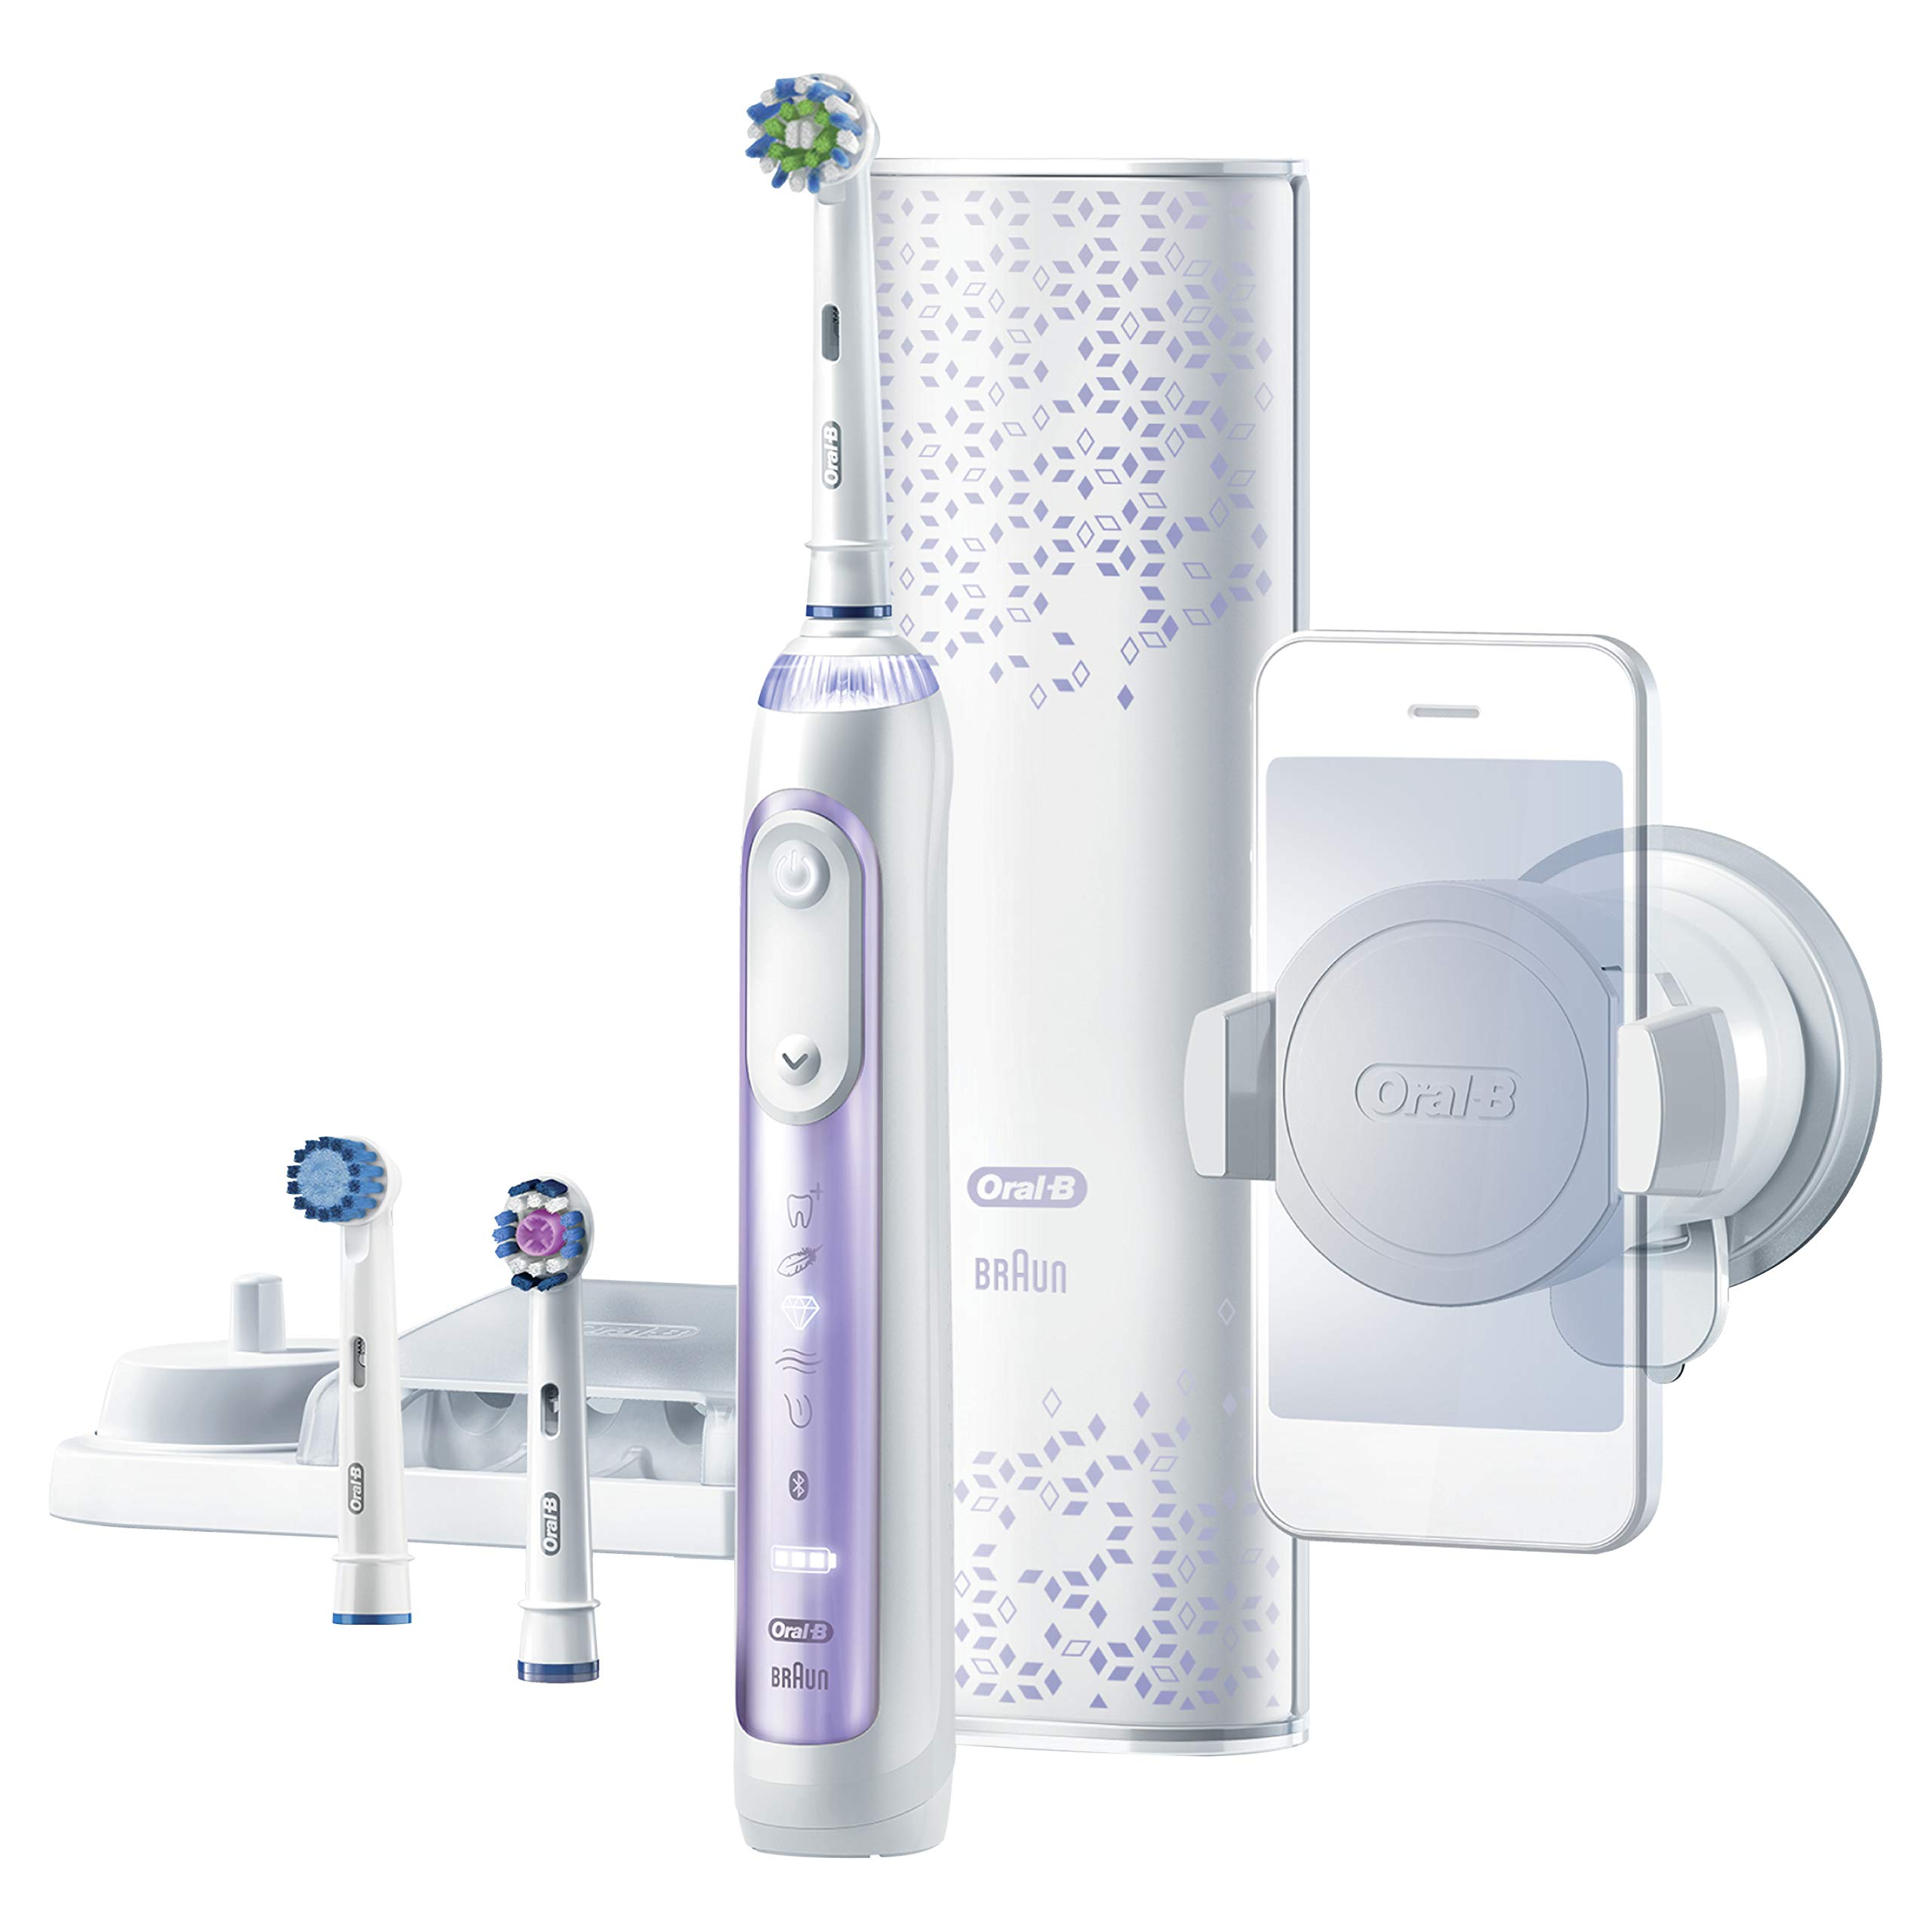 Oral-B 8000 Electronic Toothbrush, Orchid Purple, Powered by Braun by Oral-B